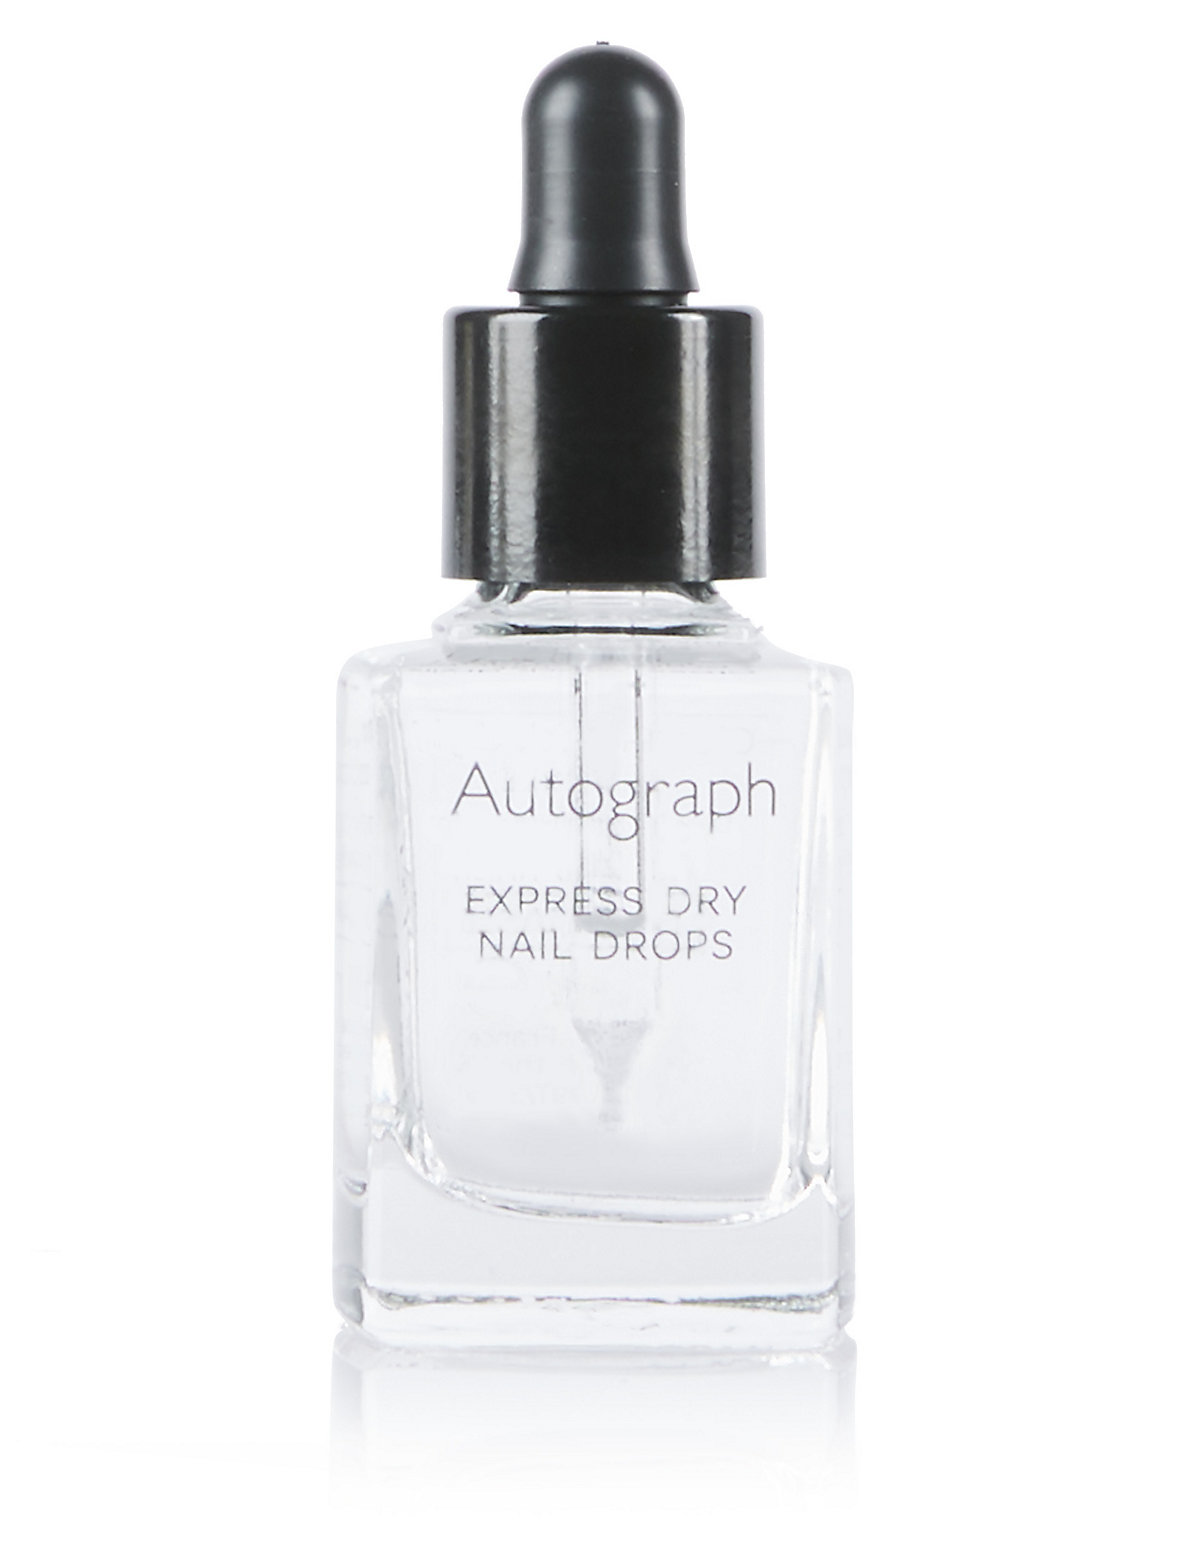 Image of Autograph Express Dry Nail Drops 11ml